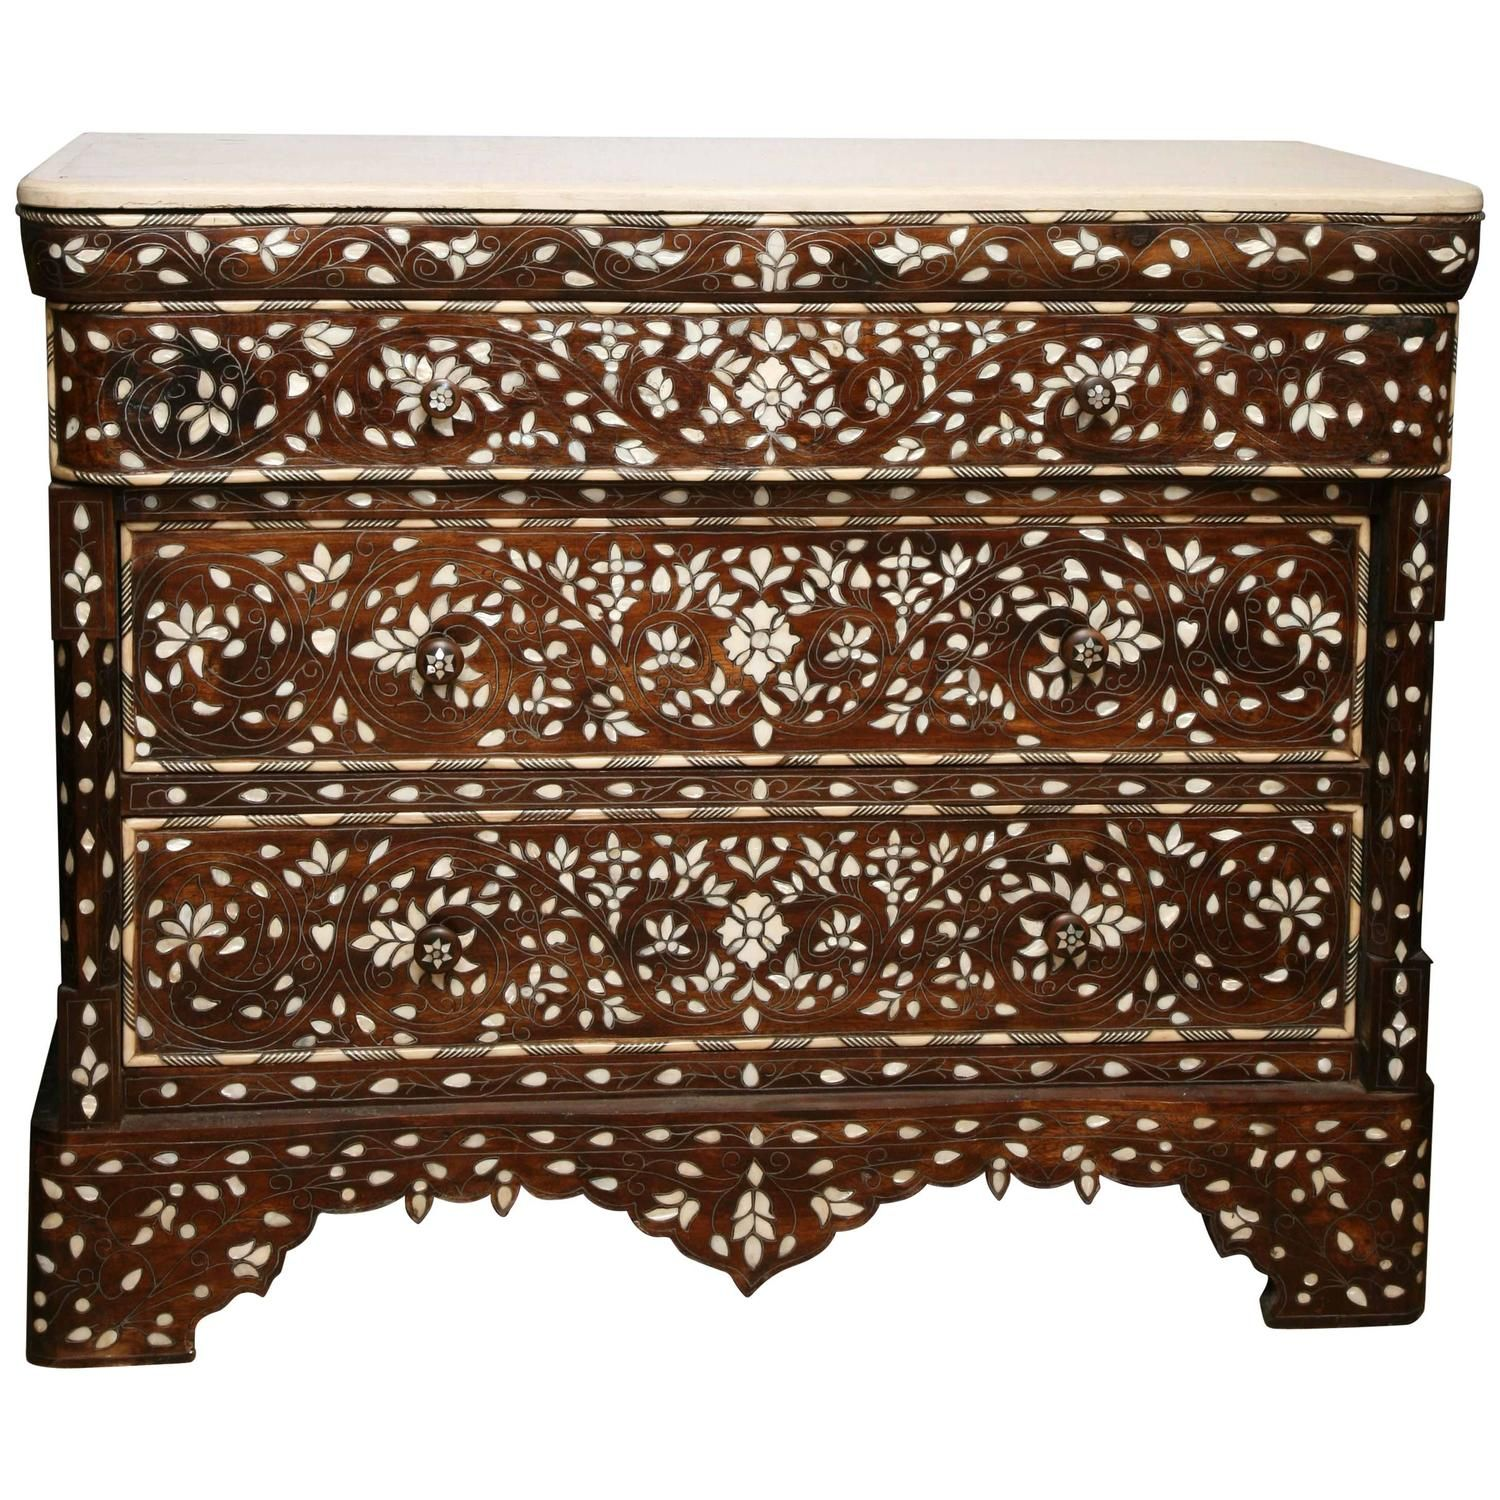 Superb 19th Century Syrian Inlaid Mother of Pearl Three Drawer